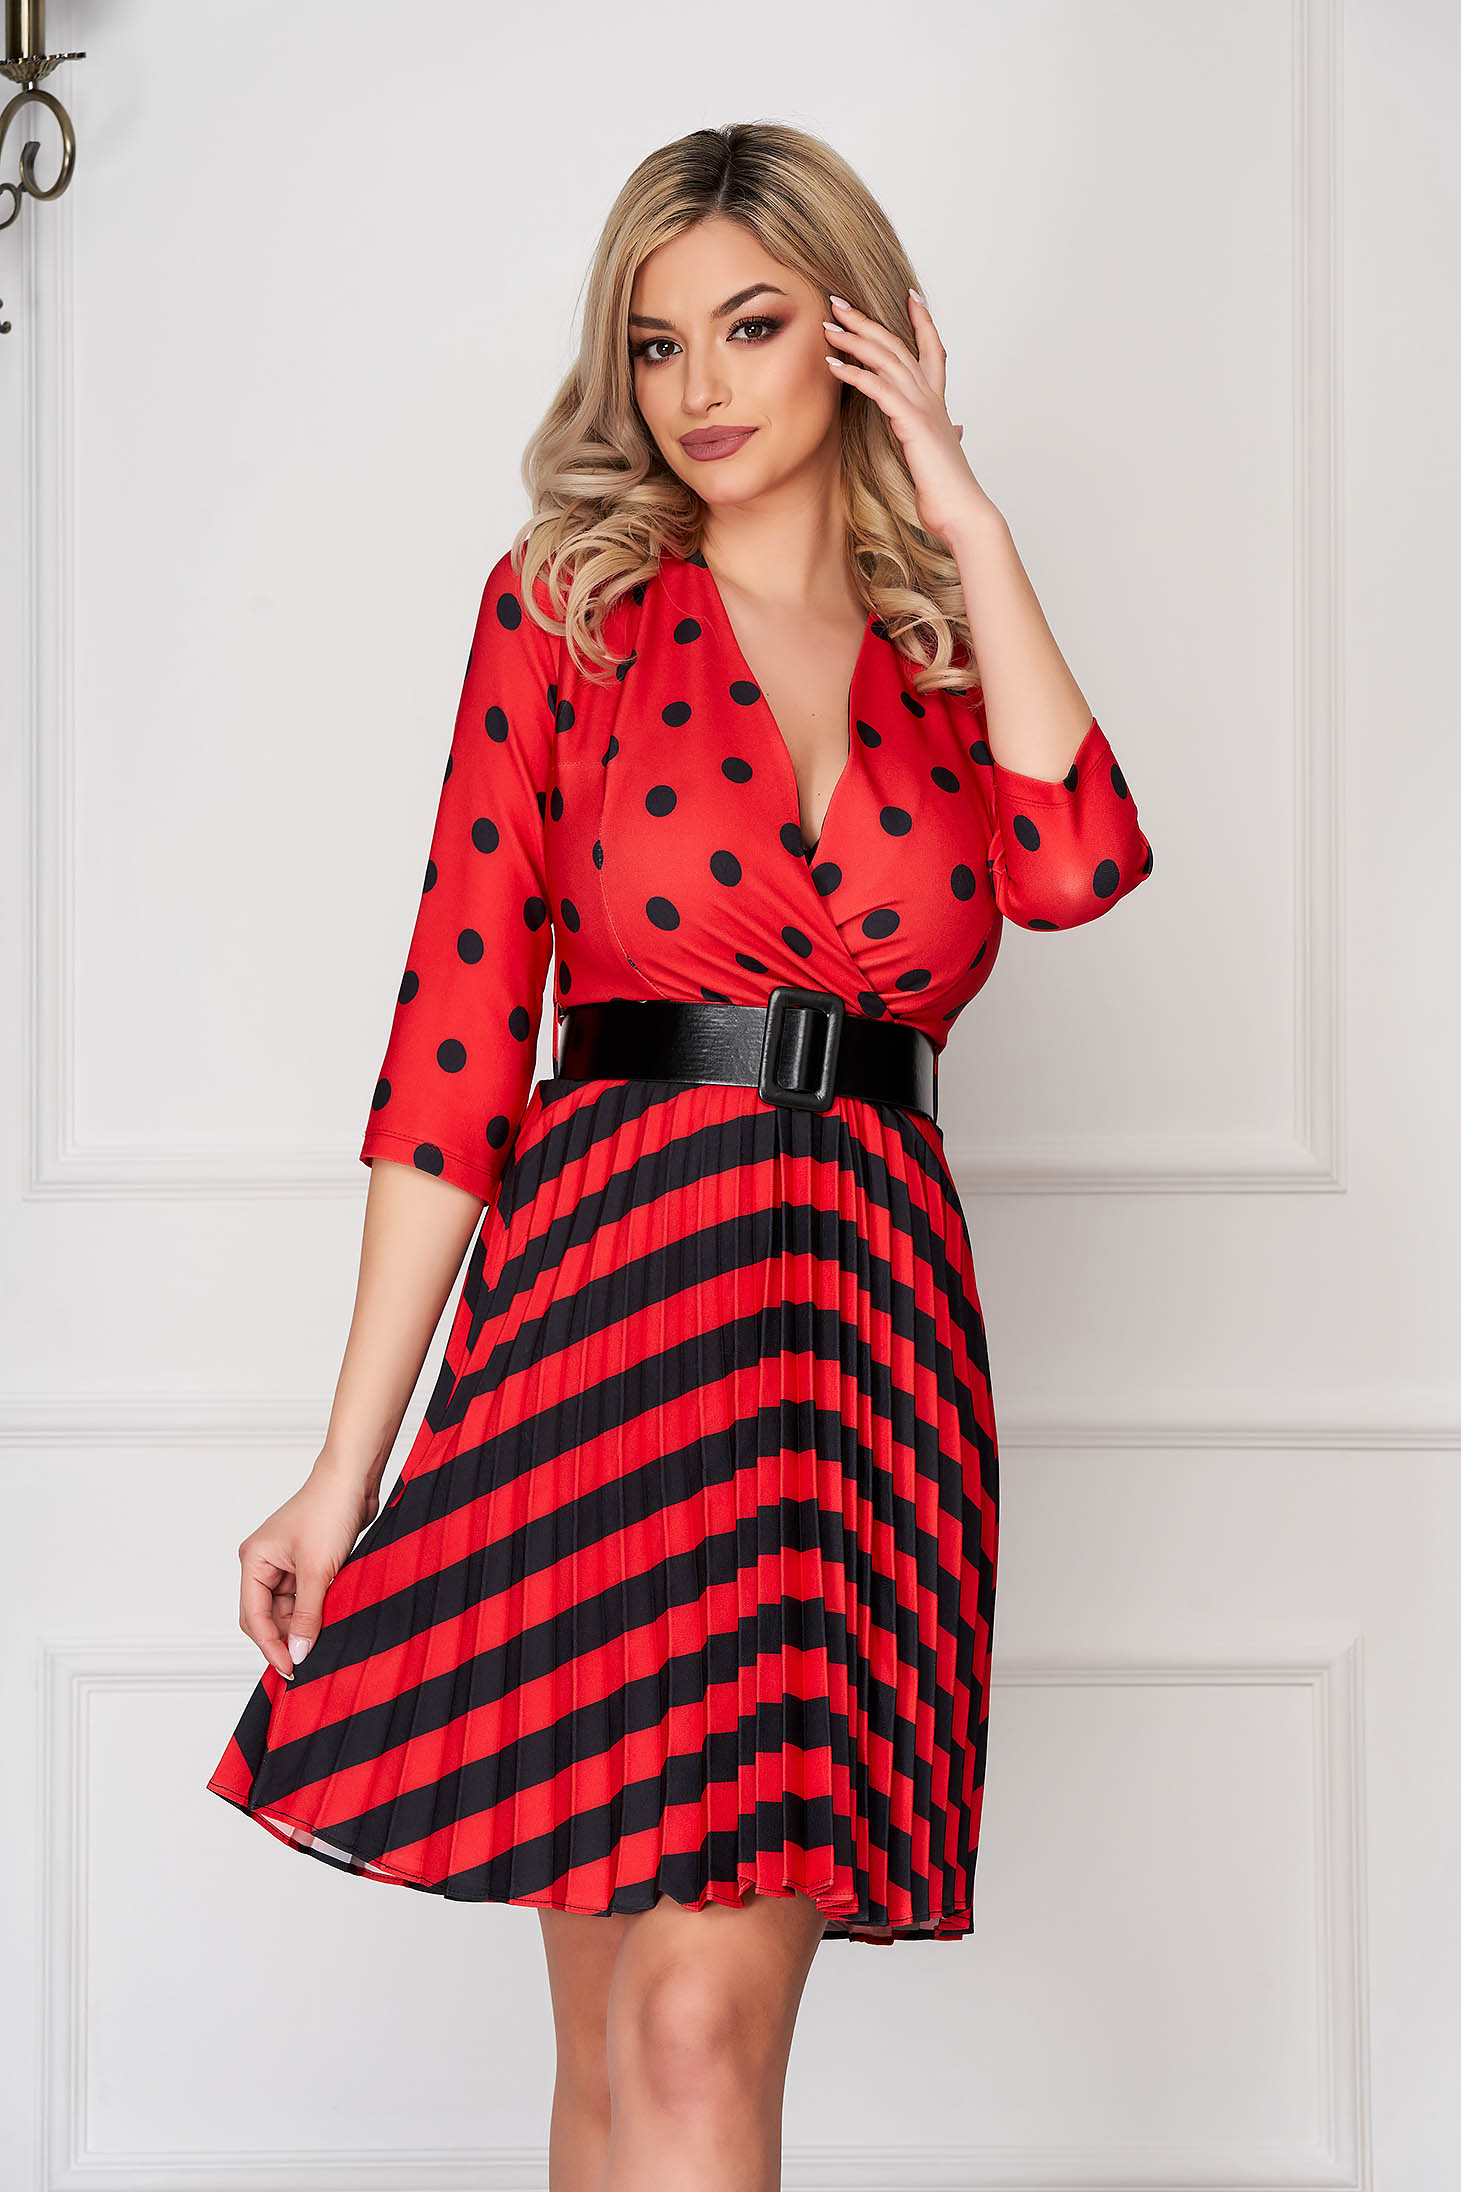 Red dress daily short cut cloche folded up with deep cleavage thin fabric